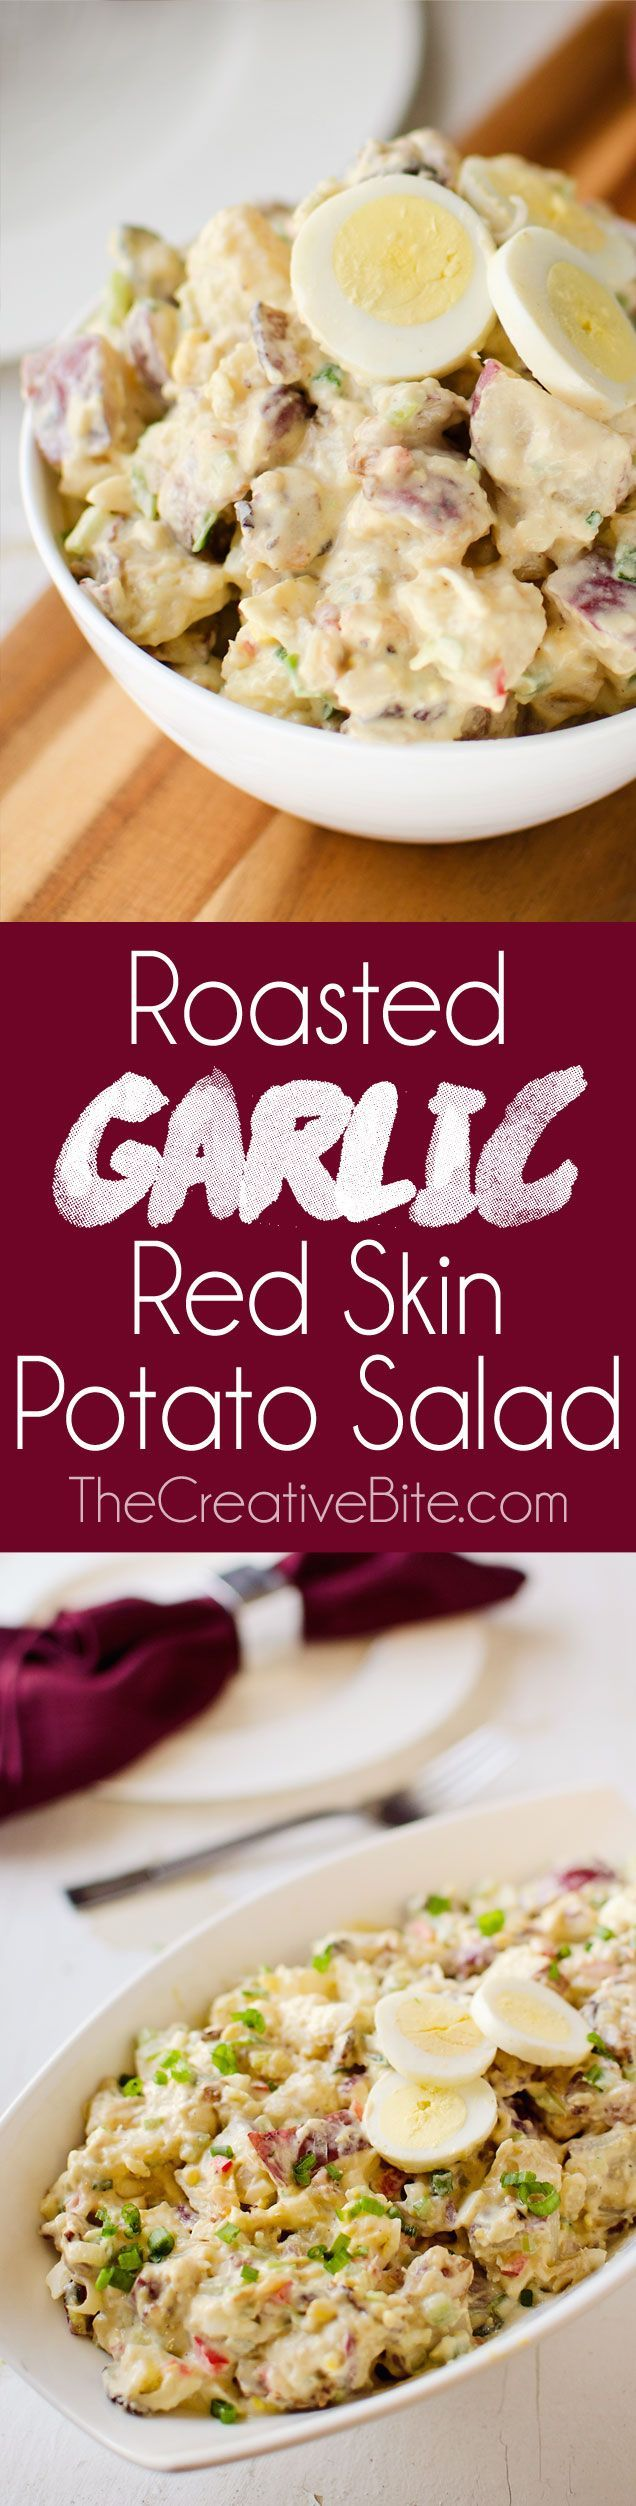 Roasted Garlic & Red Skin Potato Salad is a delicious twist on creamy potato salad recipe with roasted garlic and bacon. This hearty salad is sure to be a hit at your next picnic or potluck! #PotatoSalad #Picnic